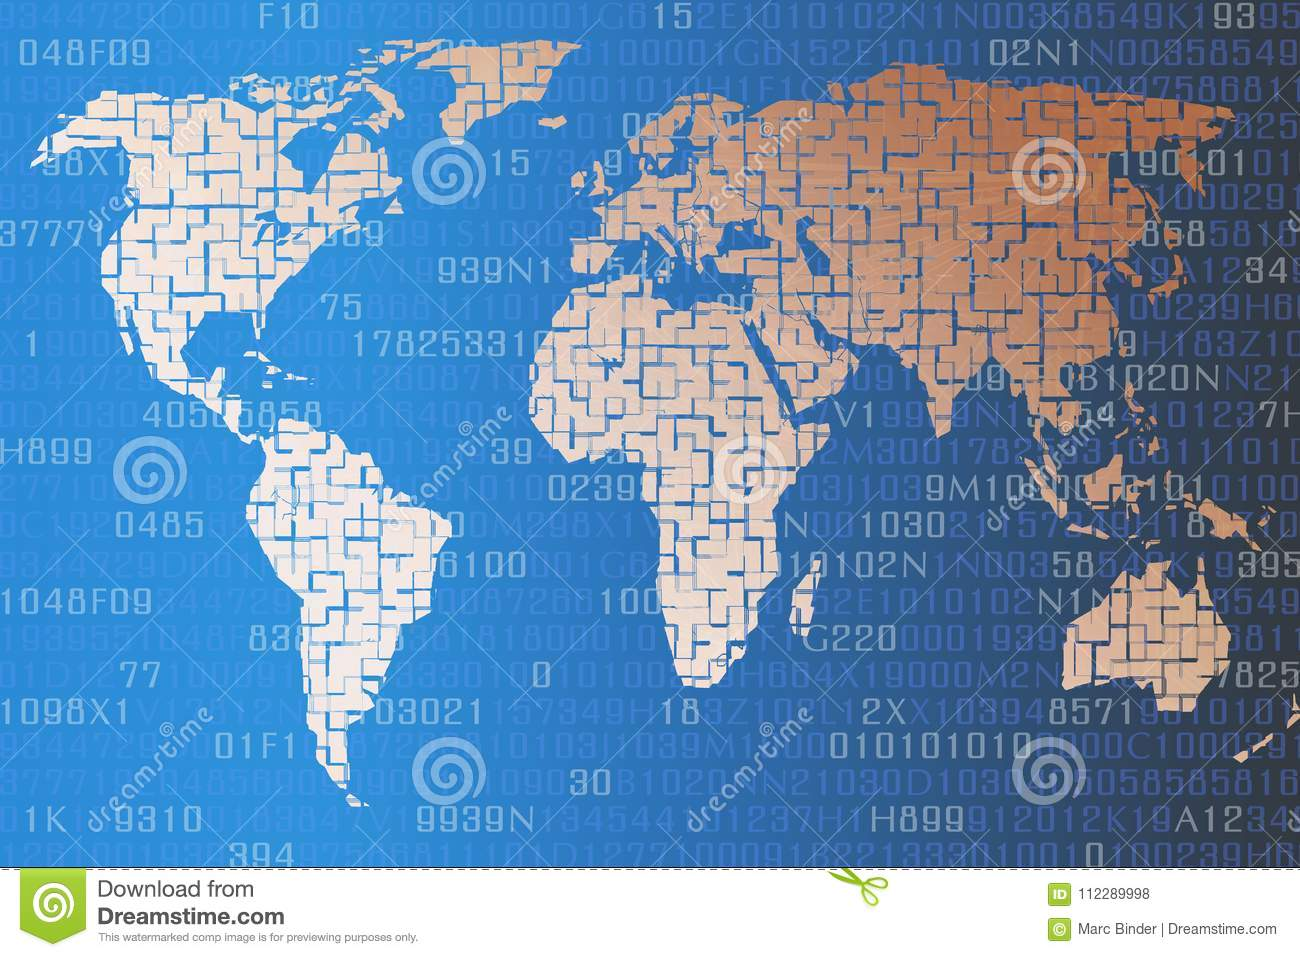 The 100 Map Of Earth.The Digital World Map Of The Earth Now Stock Illustration